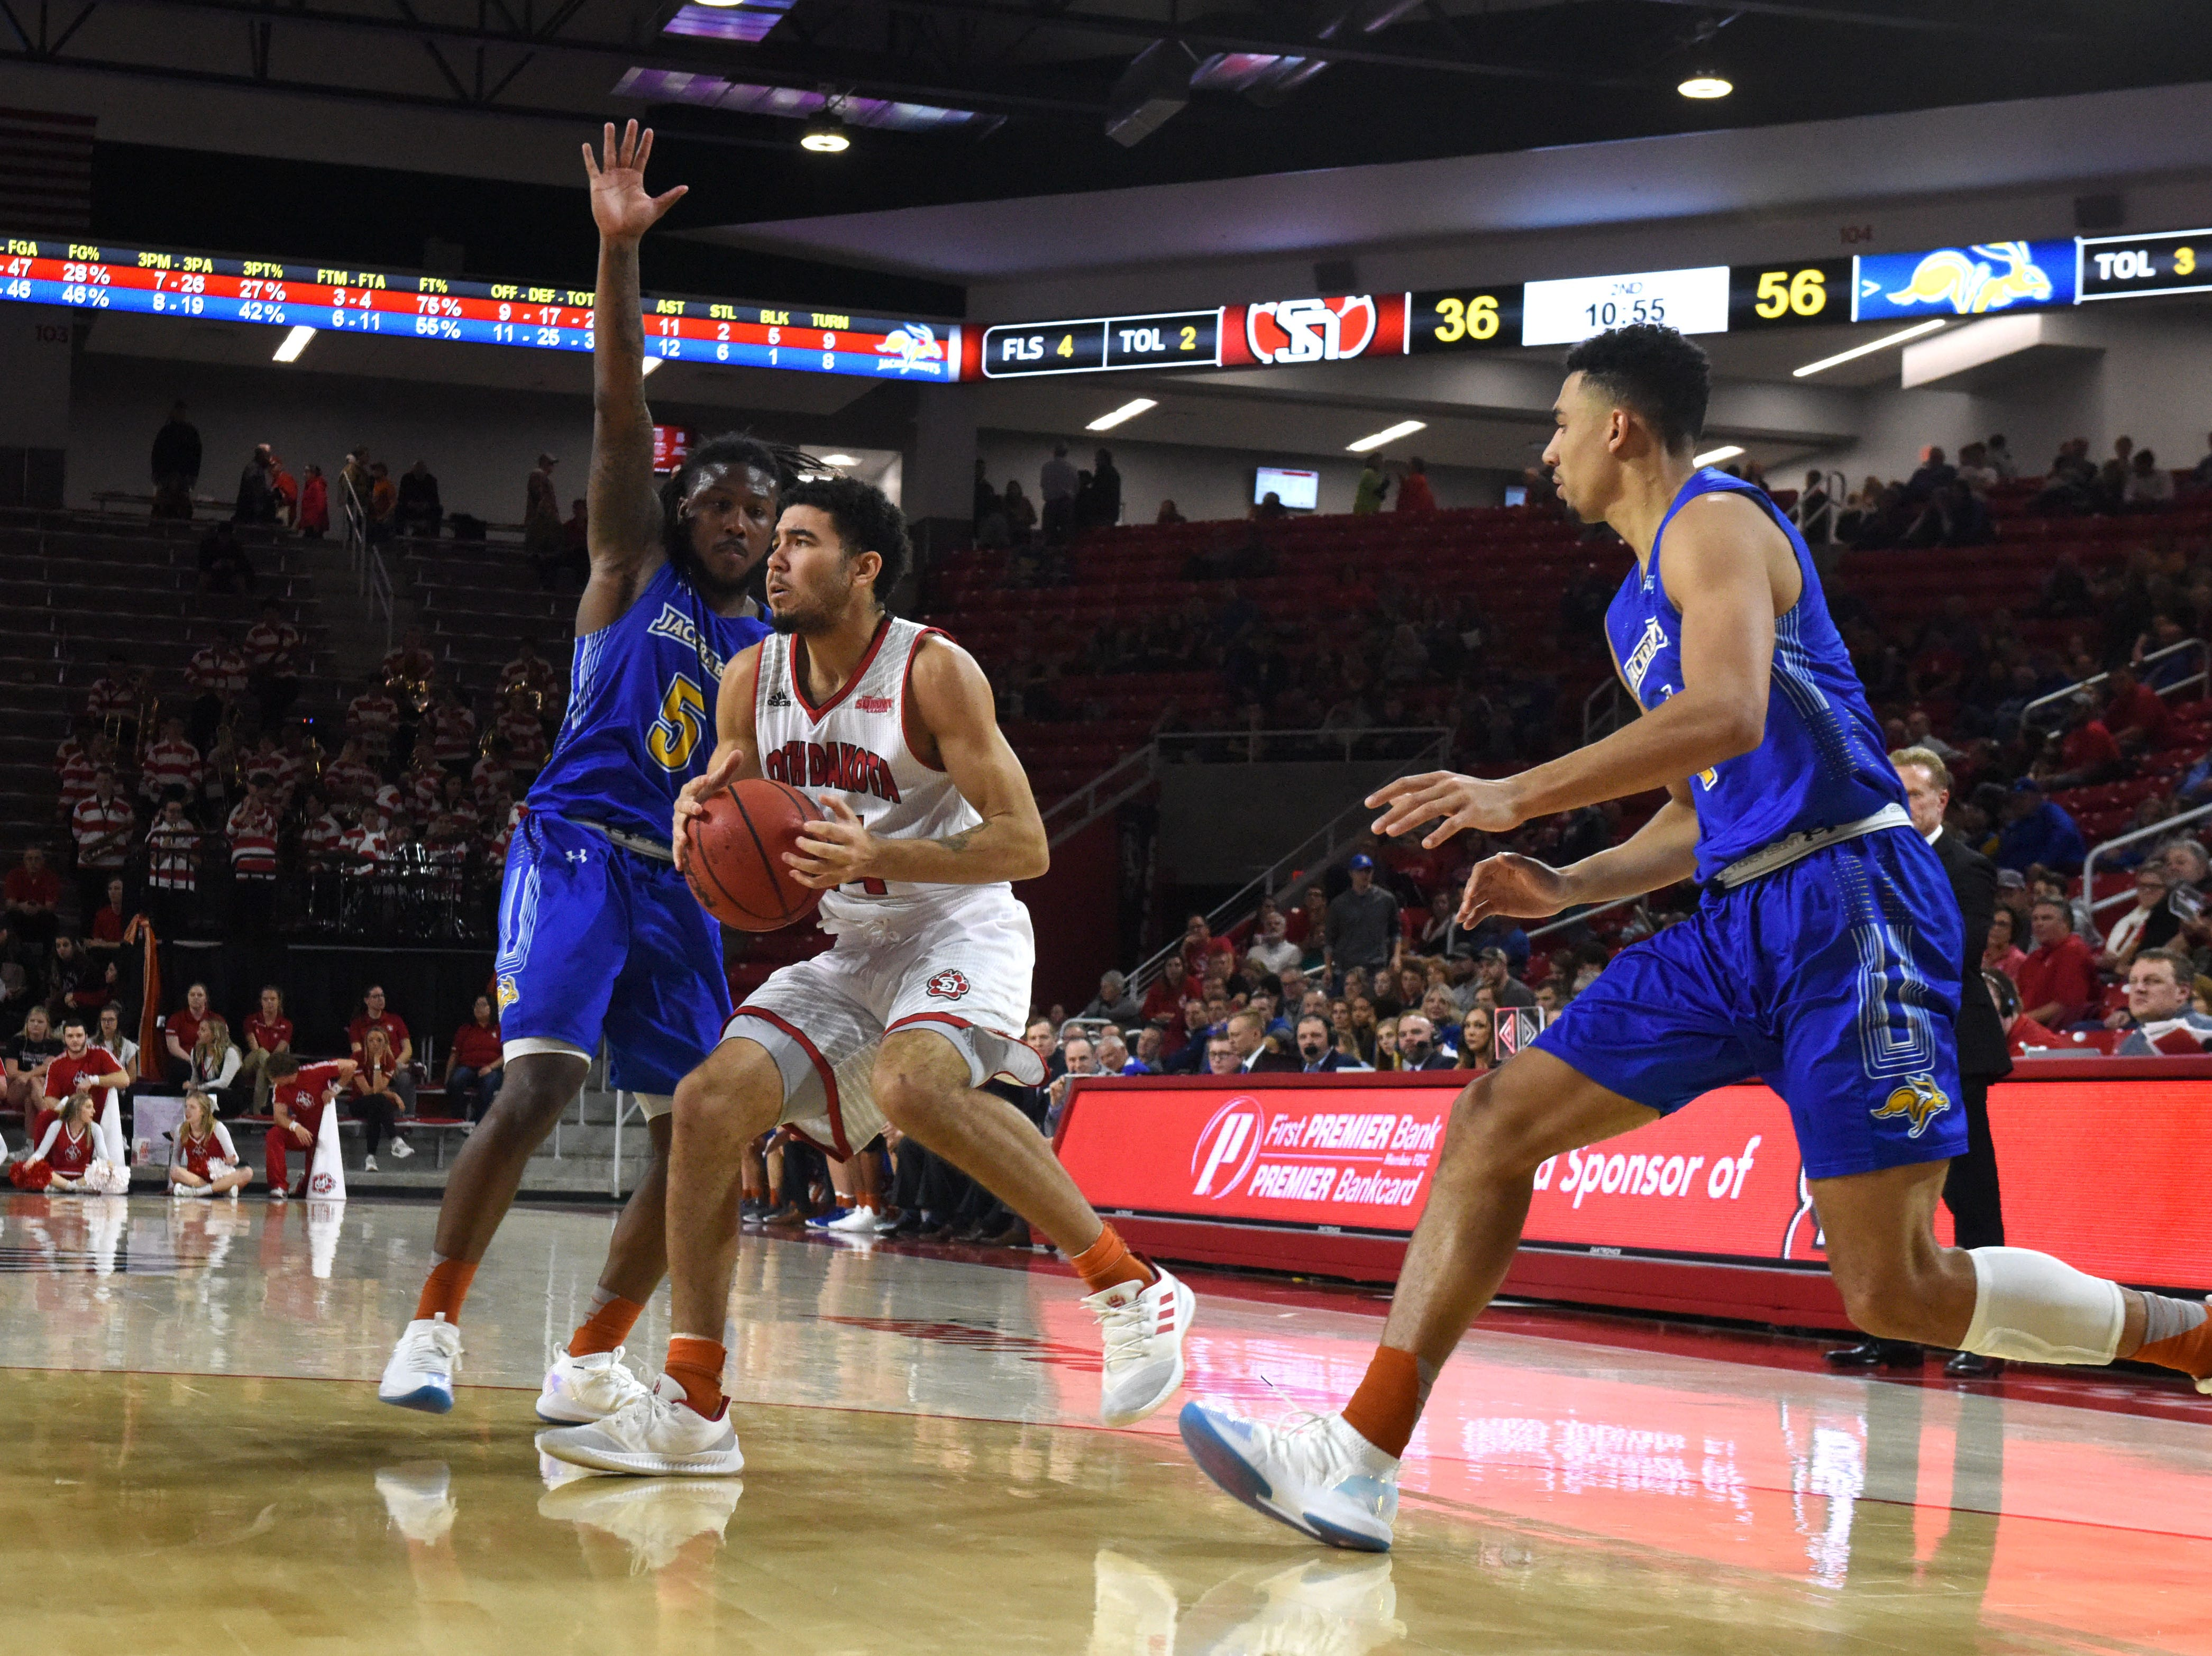 USD's Nathan Robinson dribbles the ball past SDSU players during a game, Sunday, Jan. 6, 2019 in Vermillion, S.D.